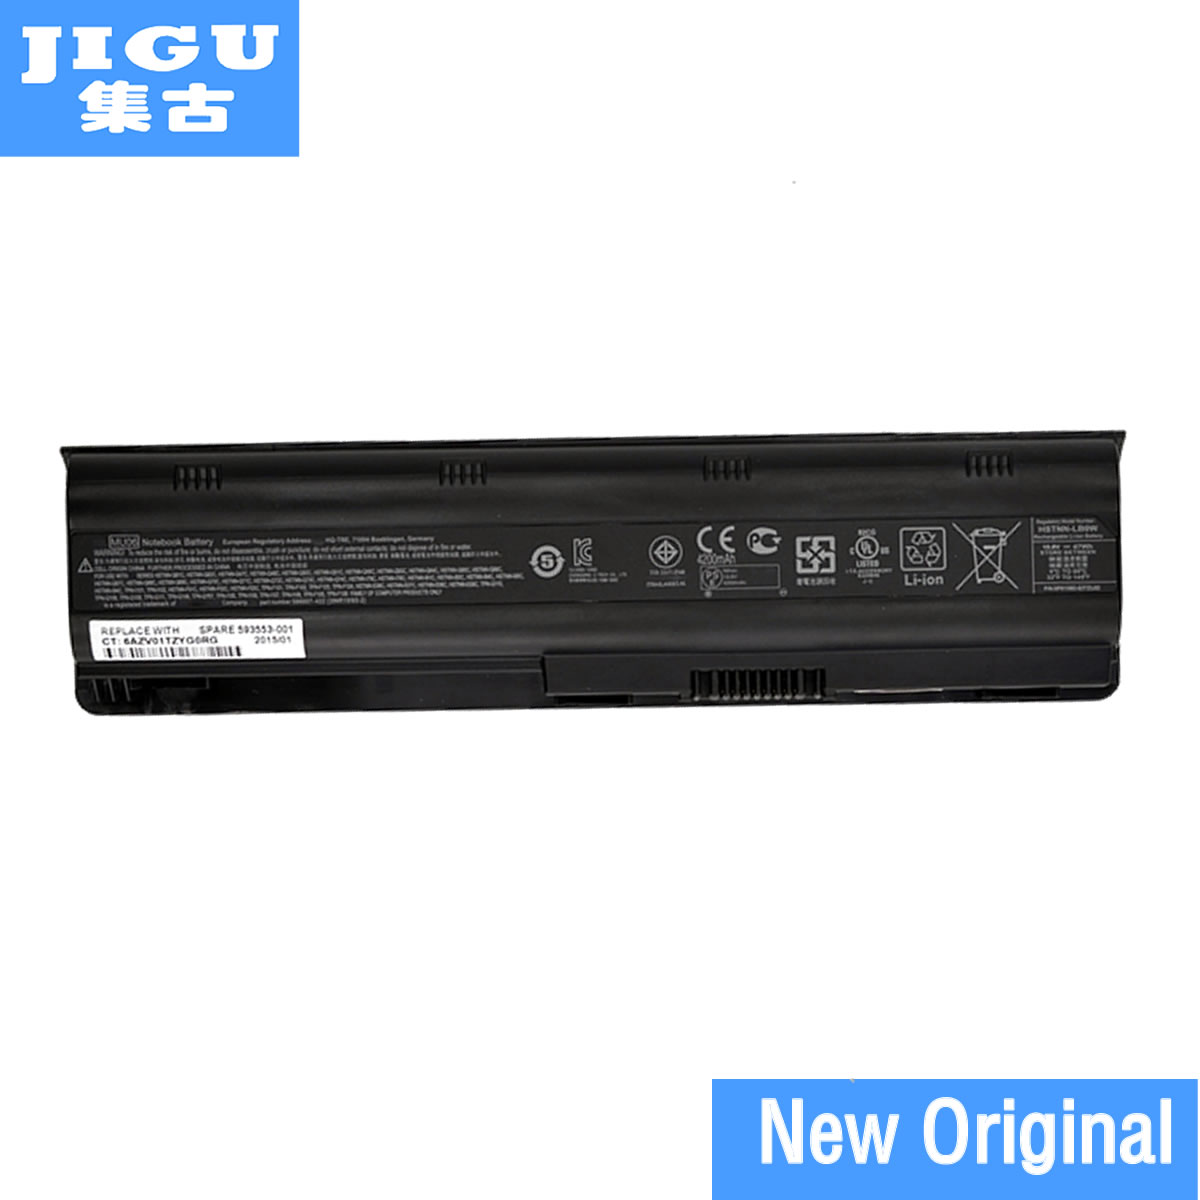 JIGU New Original Laptop Battery For HP For Pavilion G4 G6 G7 G32 G42 G56 G62 G72 CQ32 CQ42 CQ43 CQ62 CQ56 CQ72 DM4 MU06